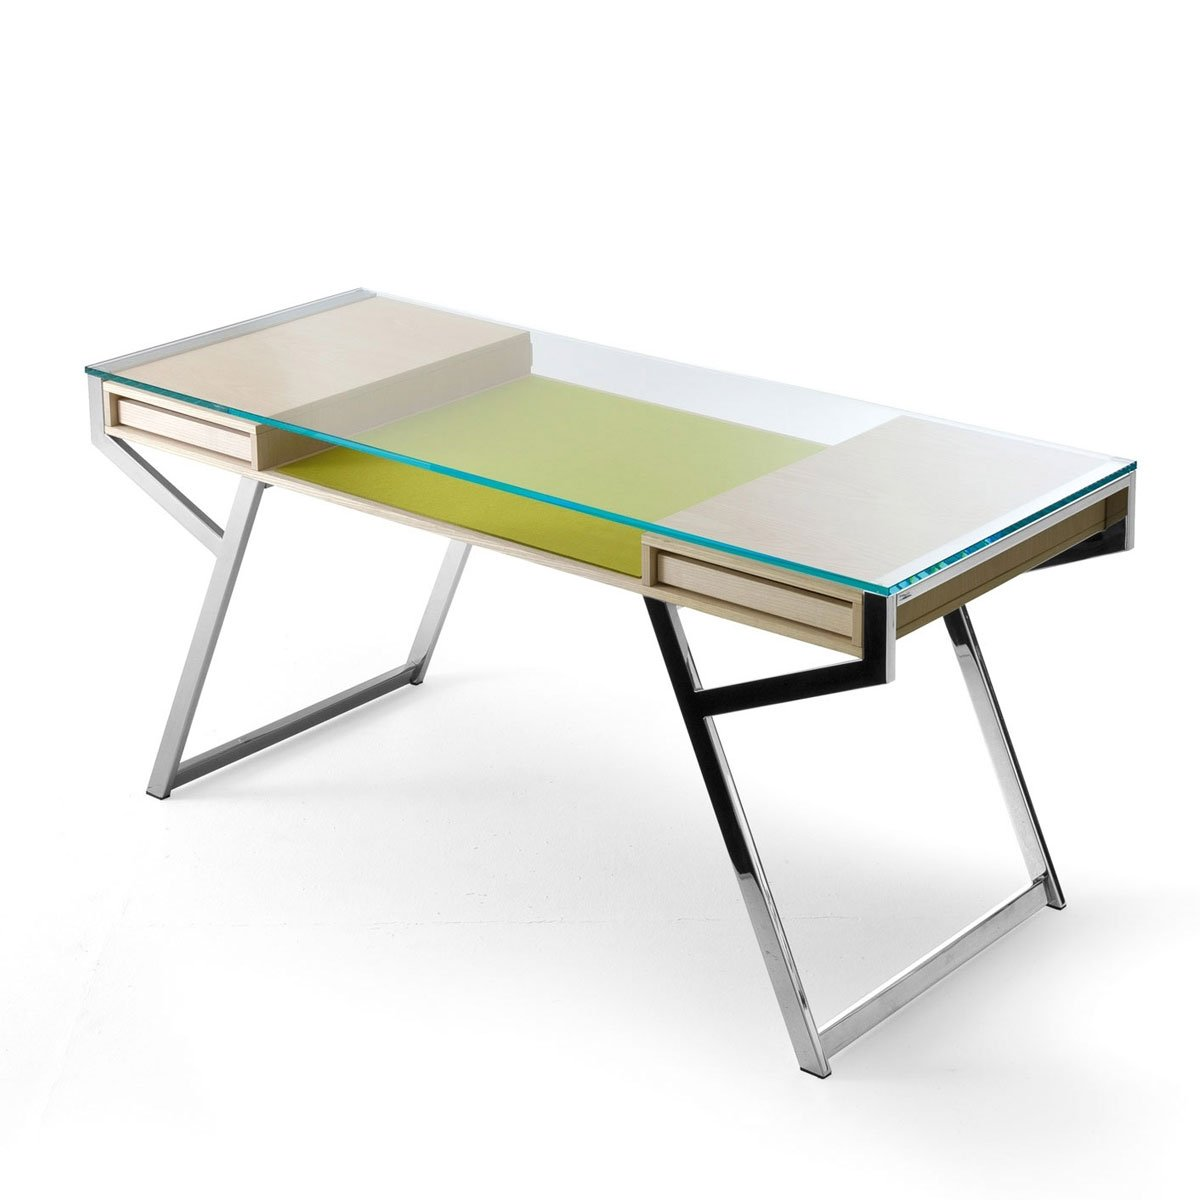 Lui glass desk with wood and metal frame by gallotti for Glass furniture